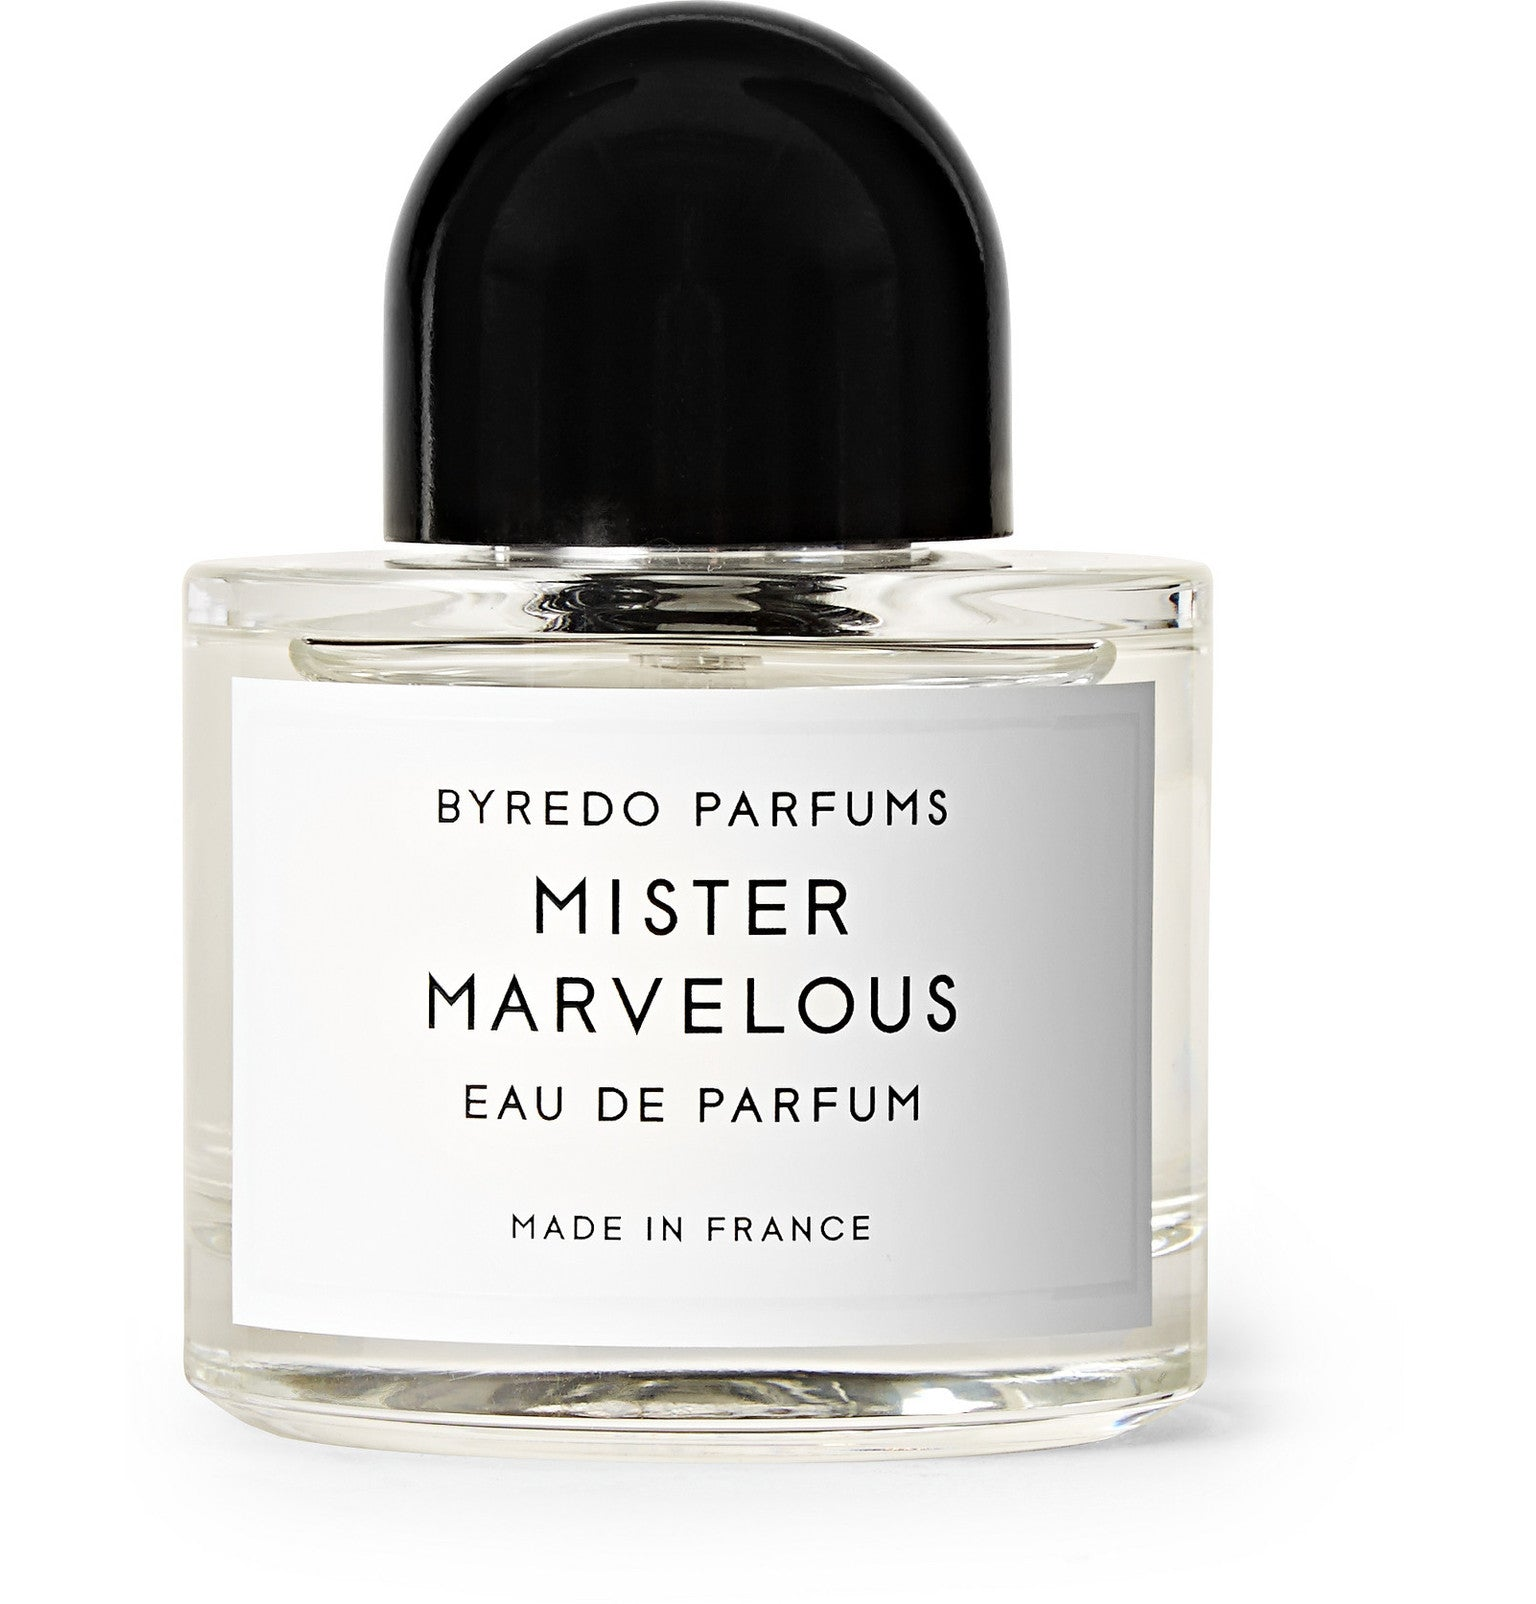 Niche Fragrance for Summer | Byredo Mister Marvelous Eau de Parfum